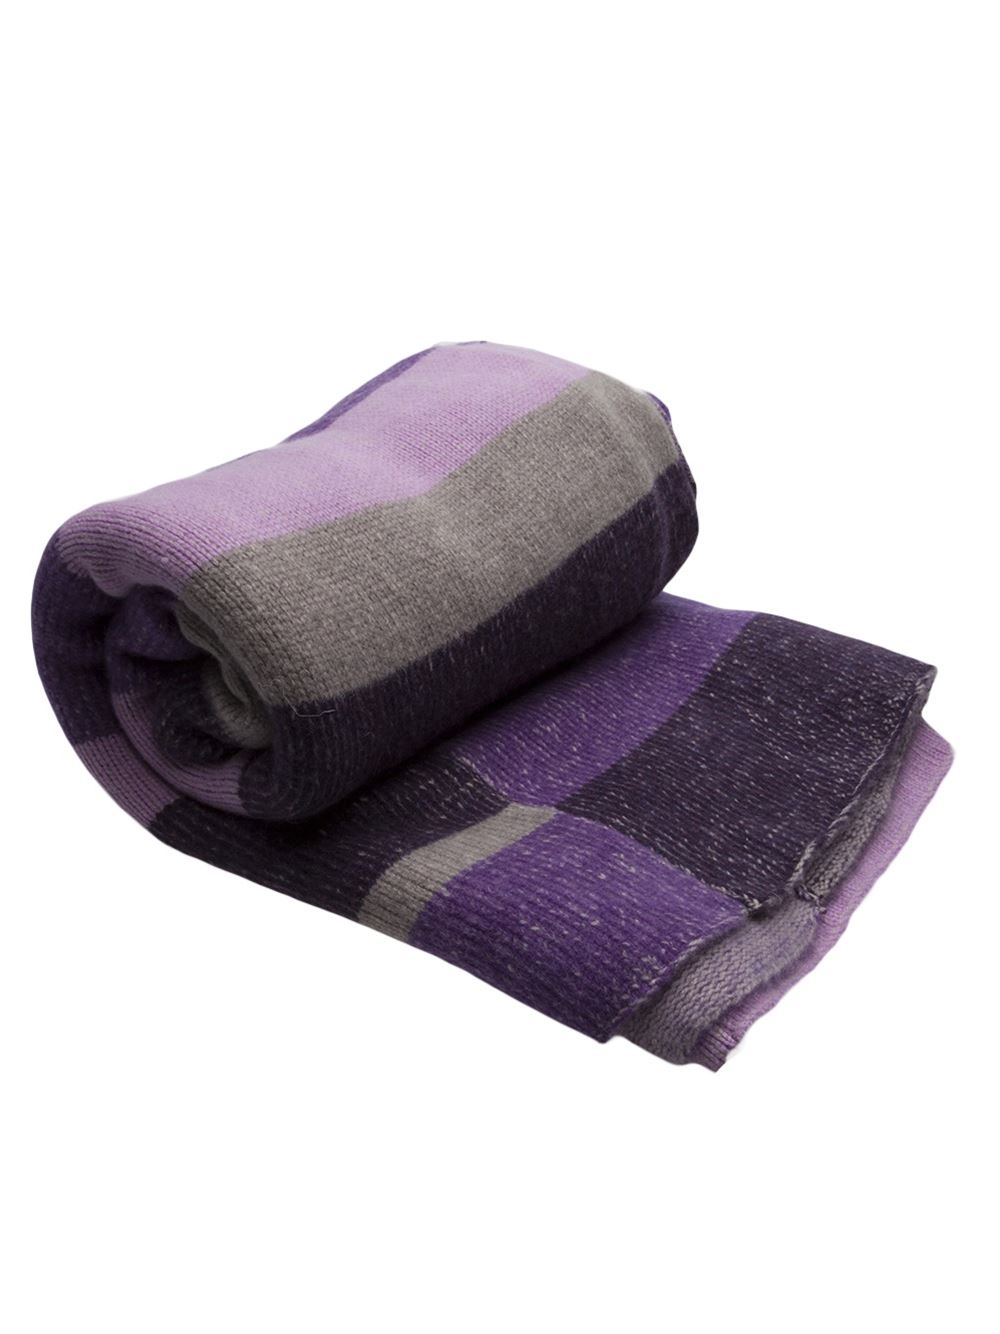 The Elder Statesman Cashmere Blanket $3,360